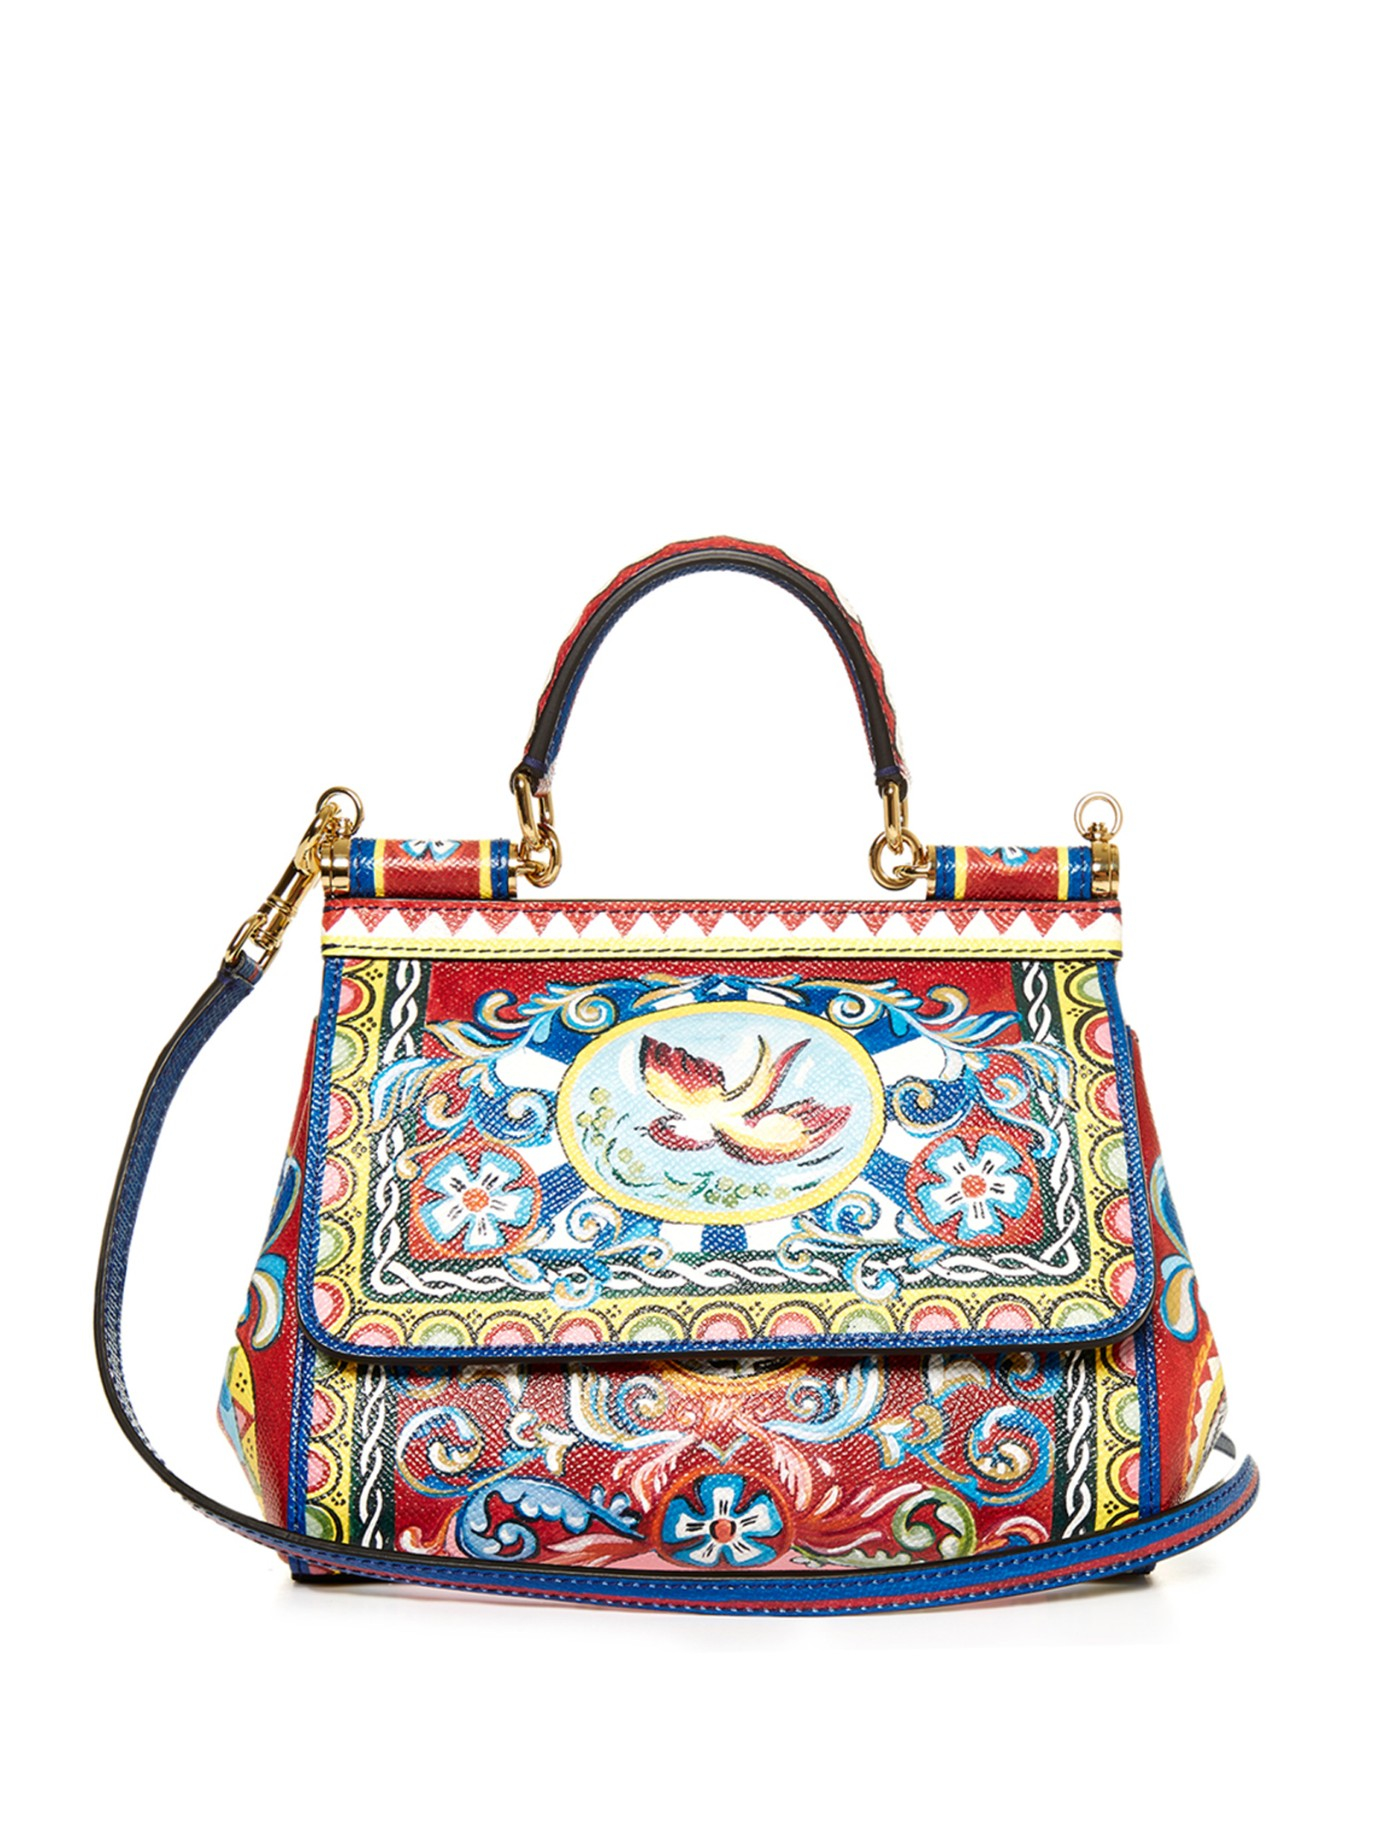 Lyst - Dolce   Gabbana Sicily Small Carretto-Print Shoulder Bag in Red 34db9413d1dbb